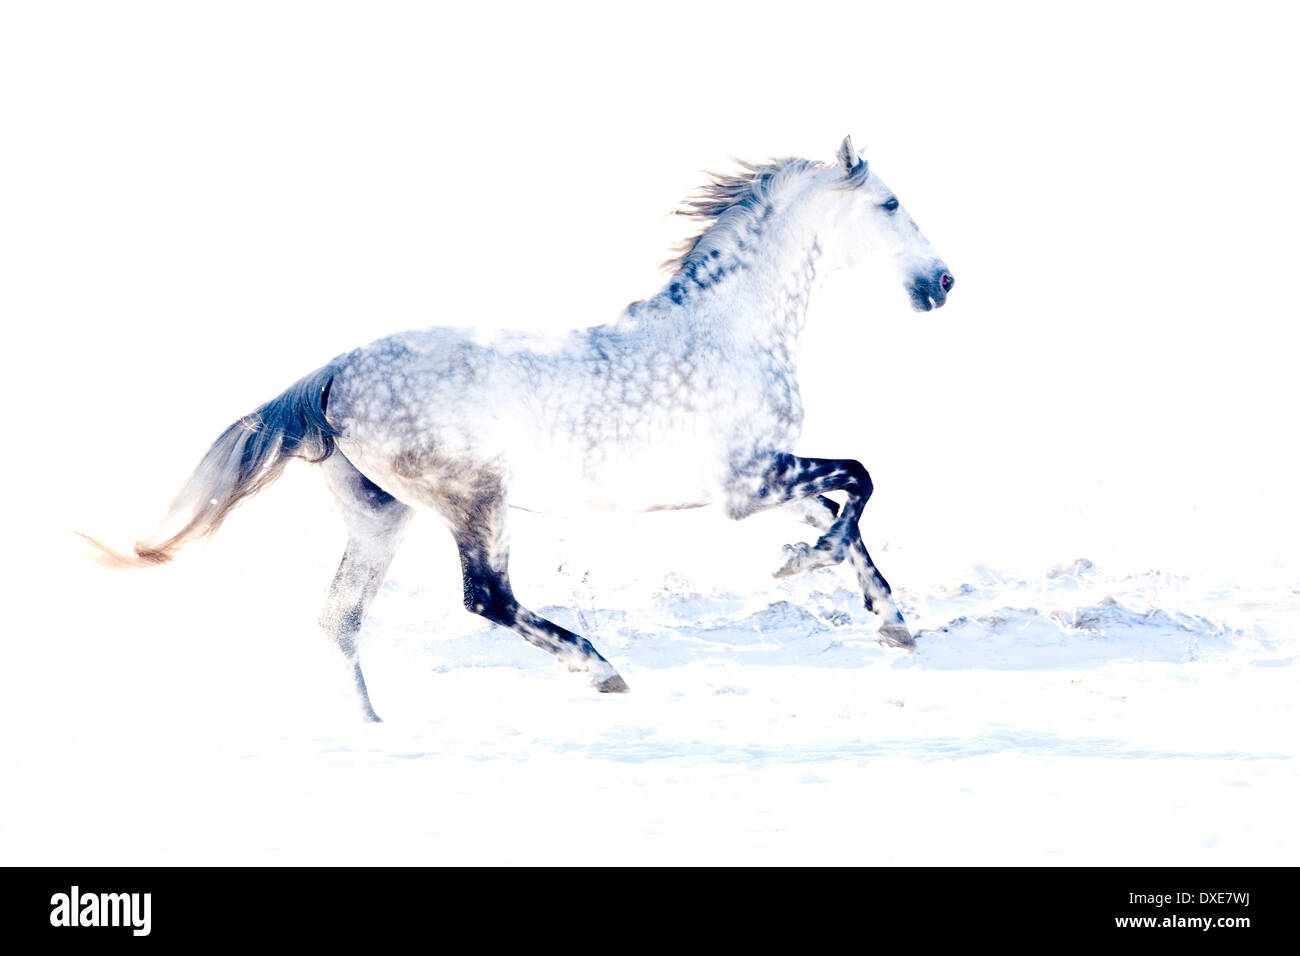 Lusitano. Dapple grey stallion galloping in snow. Germany - Stock Image